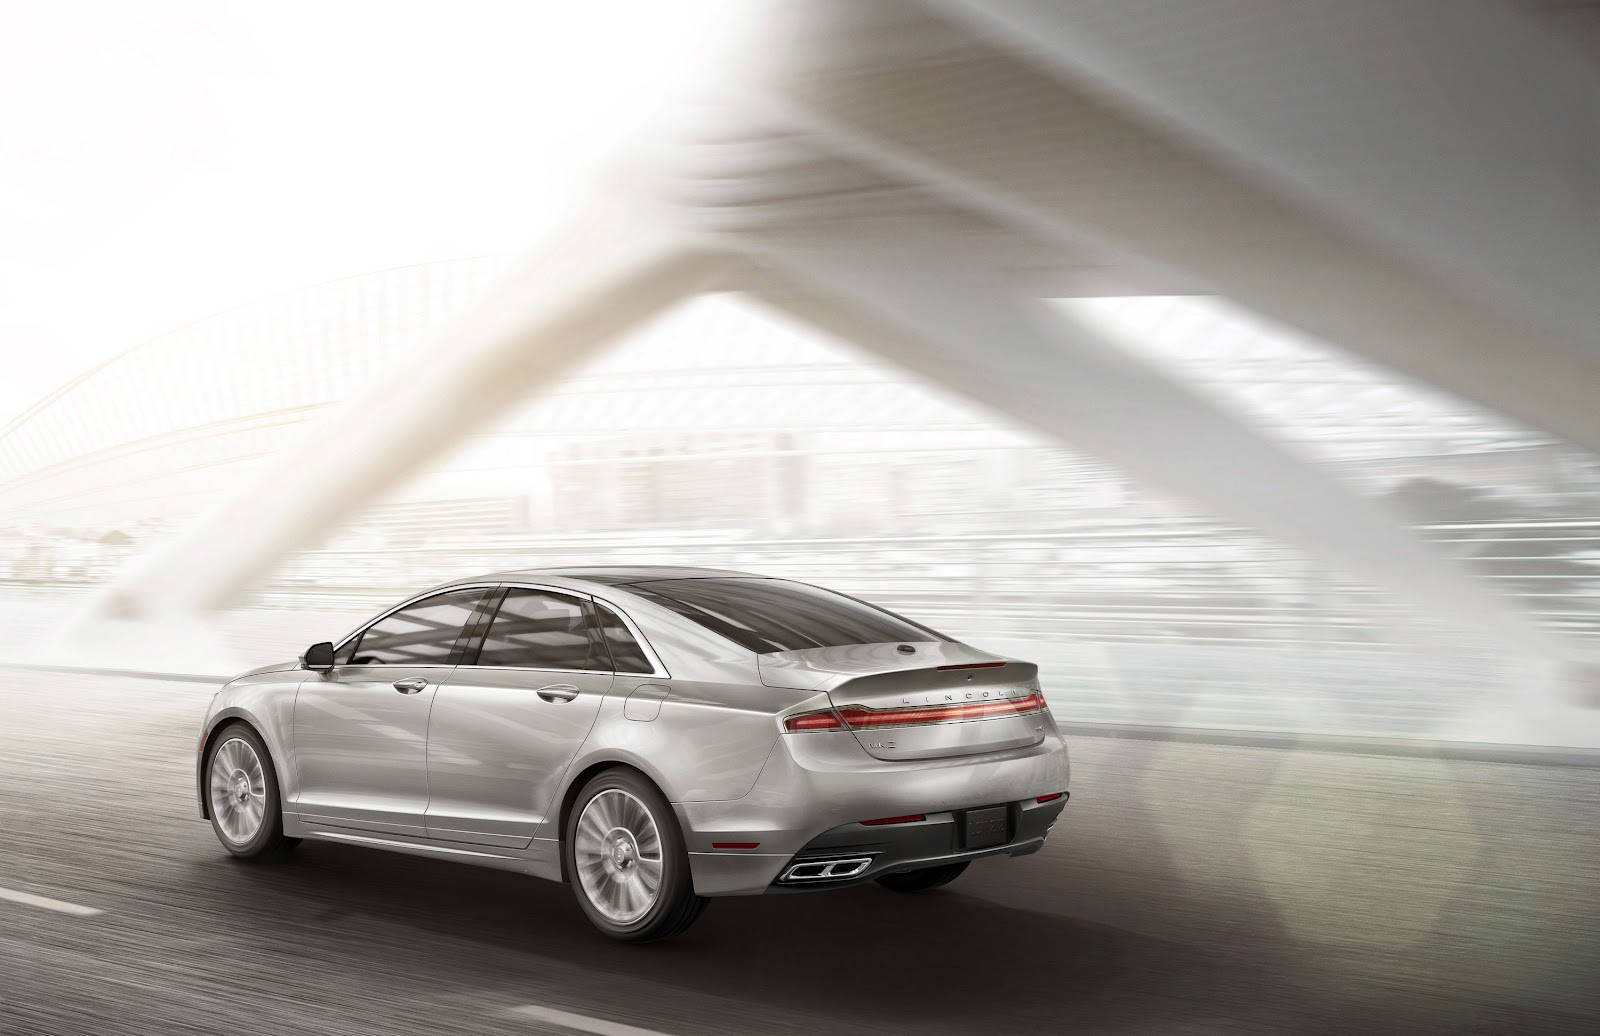 2016 - [Lincoln] MKZ - Page 2 2013+lincoln+mkz+12